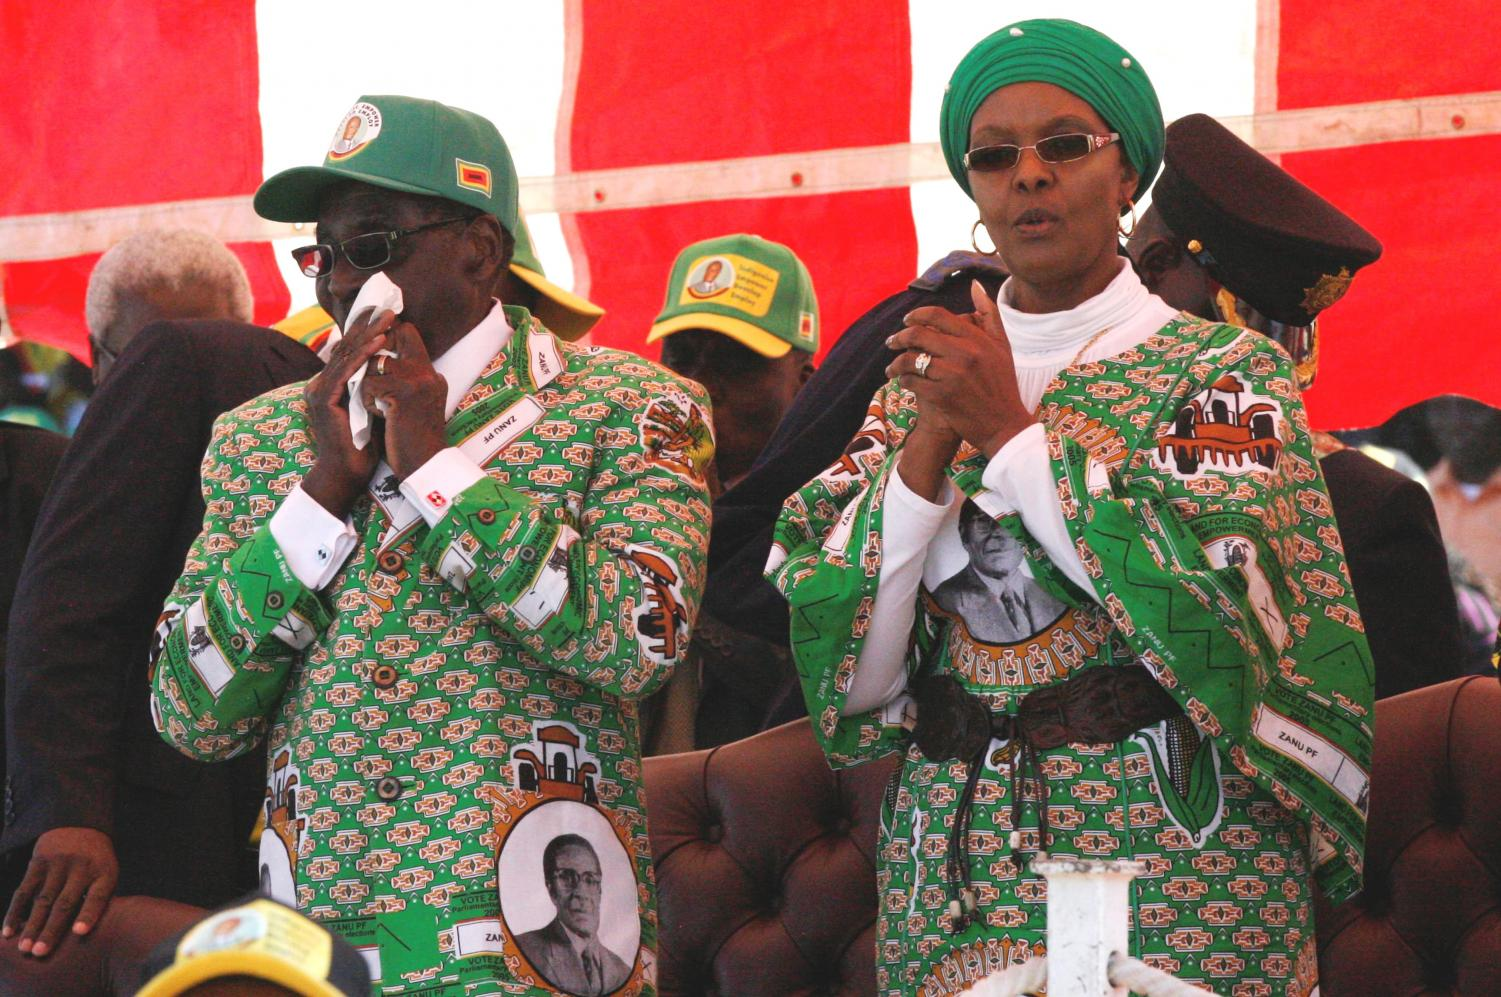 Grace Mugabe with Robert Mugabe.By User:DandjkRoberts - Own work, CC BY-SA 3.0, https://commons.wikimedia.org/w/index.php?curid=27559796